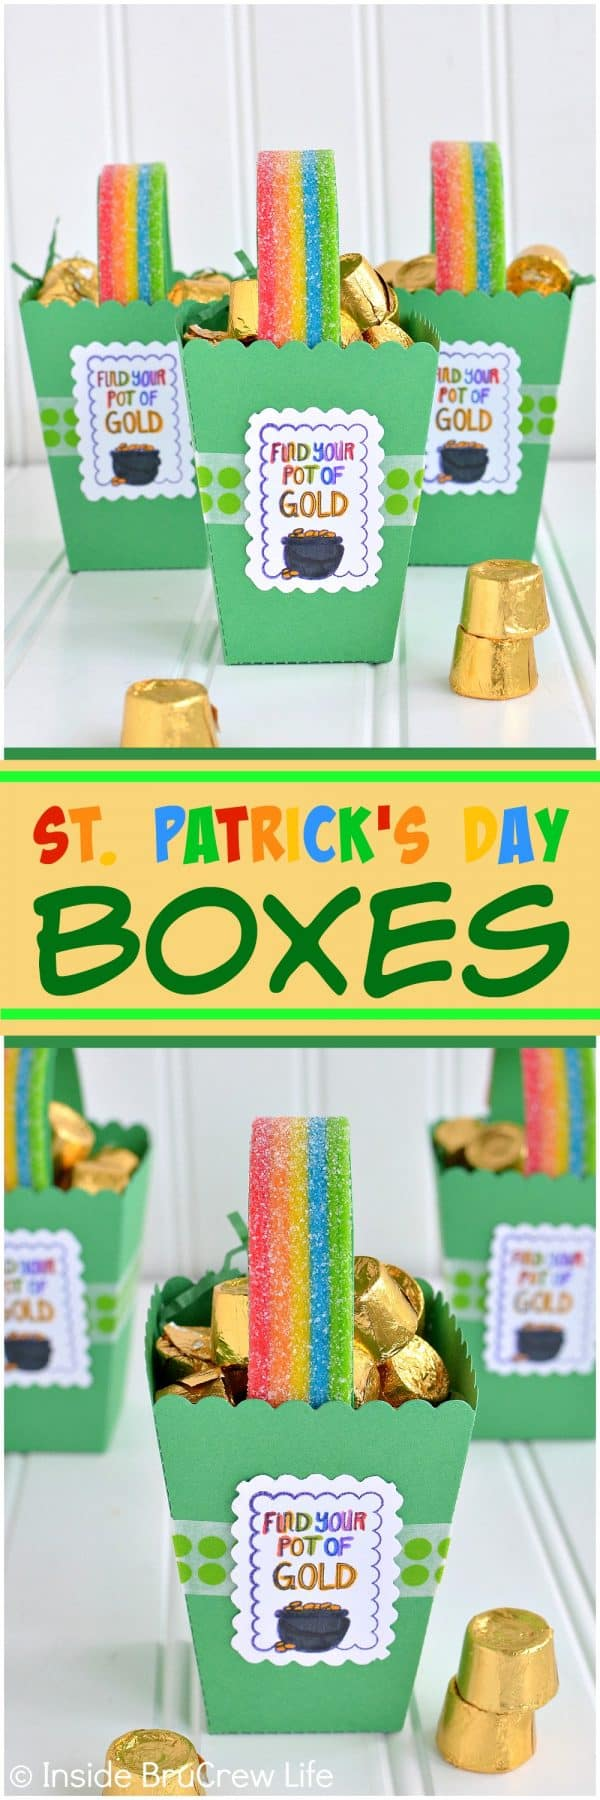 St. Patrick's Day Boxes - cute paper popcorn boxes filled with gold covered chocolate and rainbow candy handles. Great craft to make for St. Patrick's day parties. #rainbow #papercrafts #popcornbox #stpatricksdaycrafts #rainbowtreats #stpatricksdaytreats #potofgold